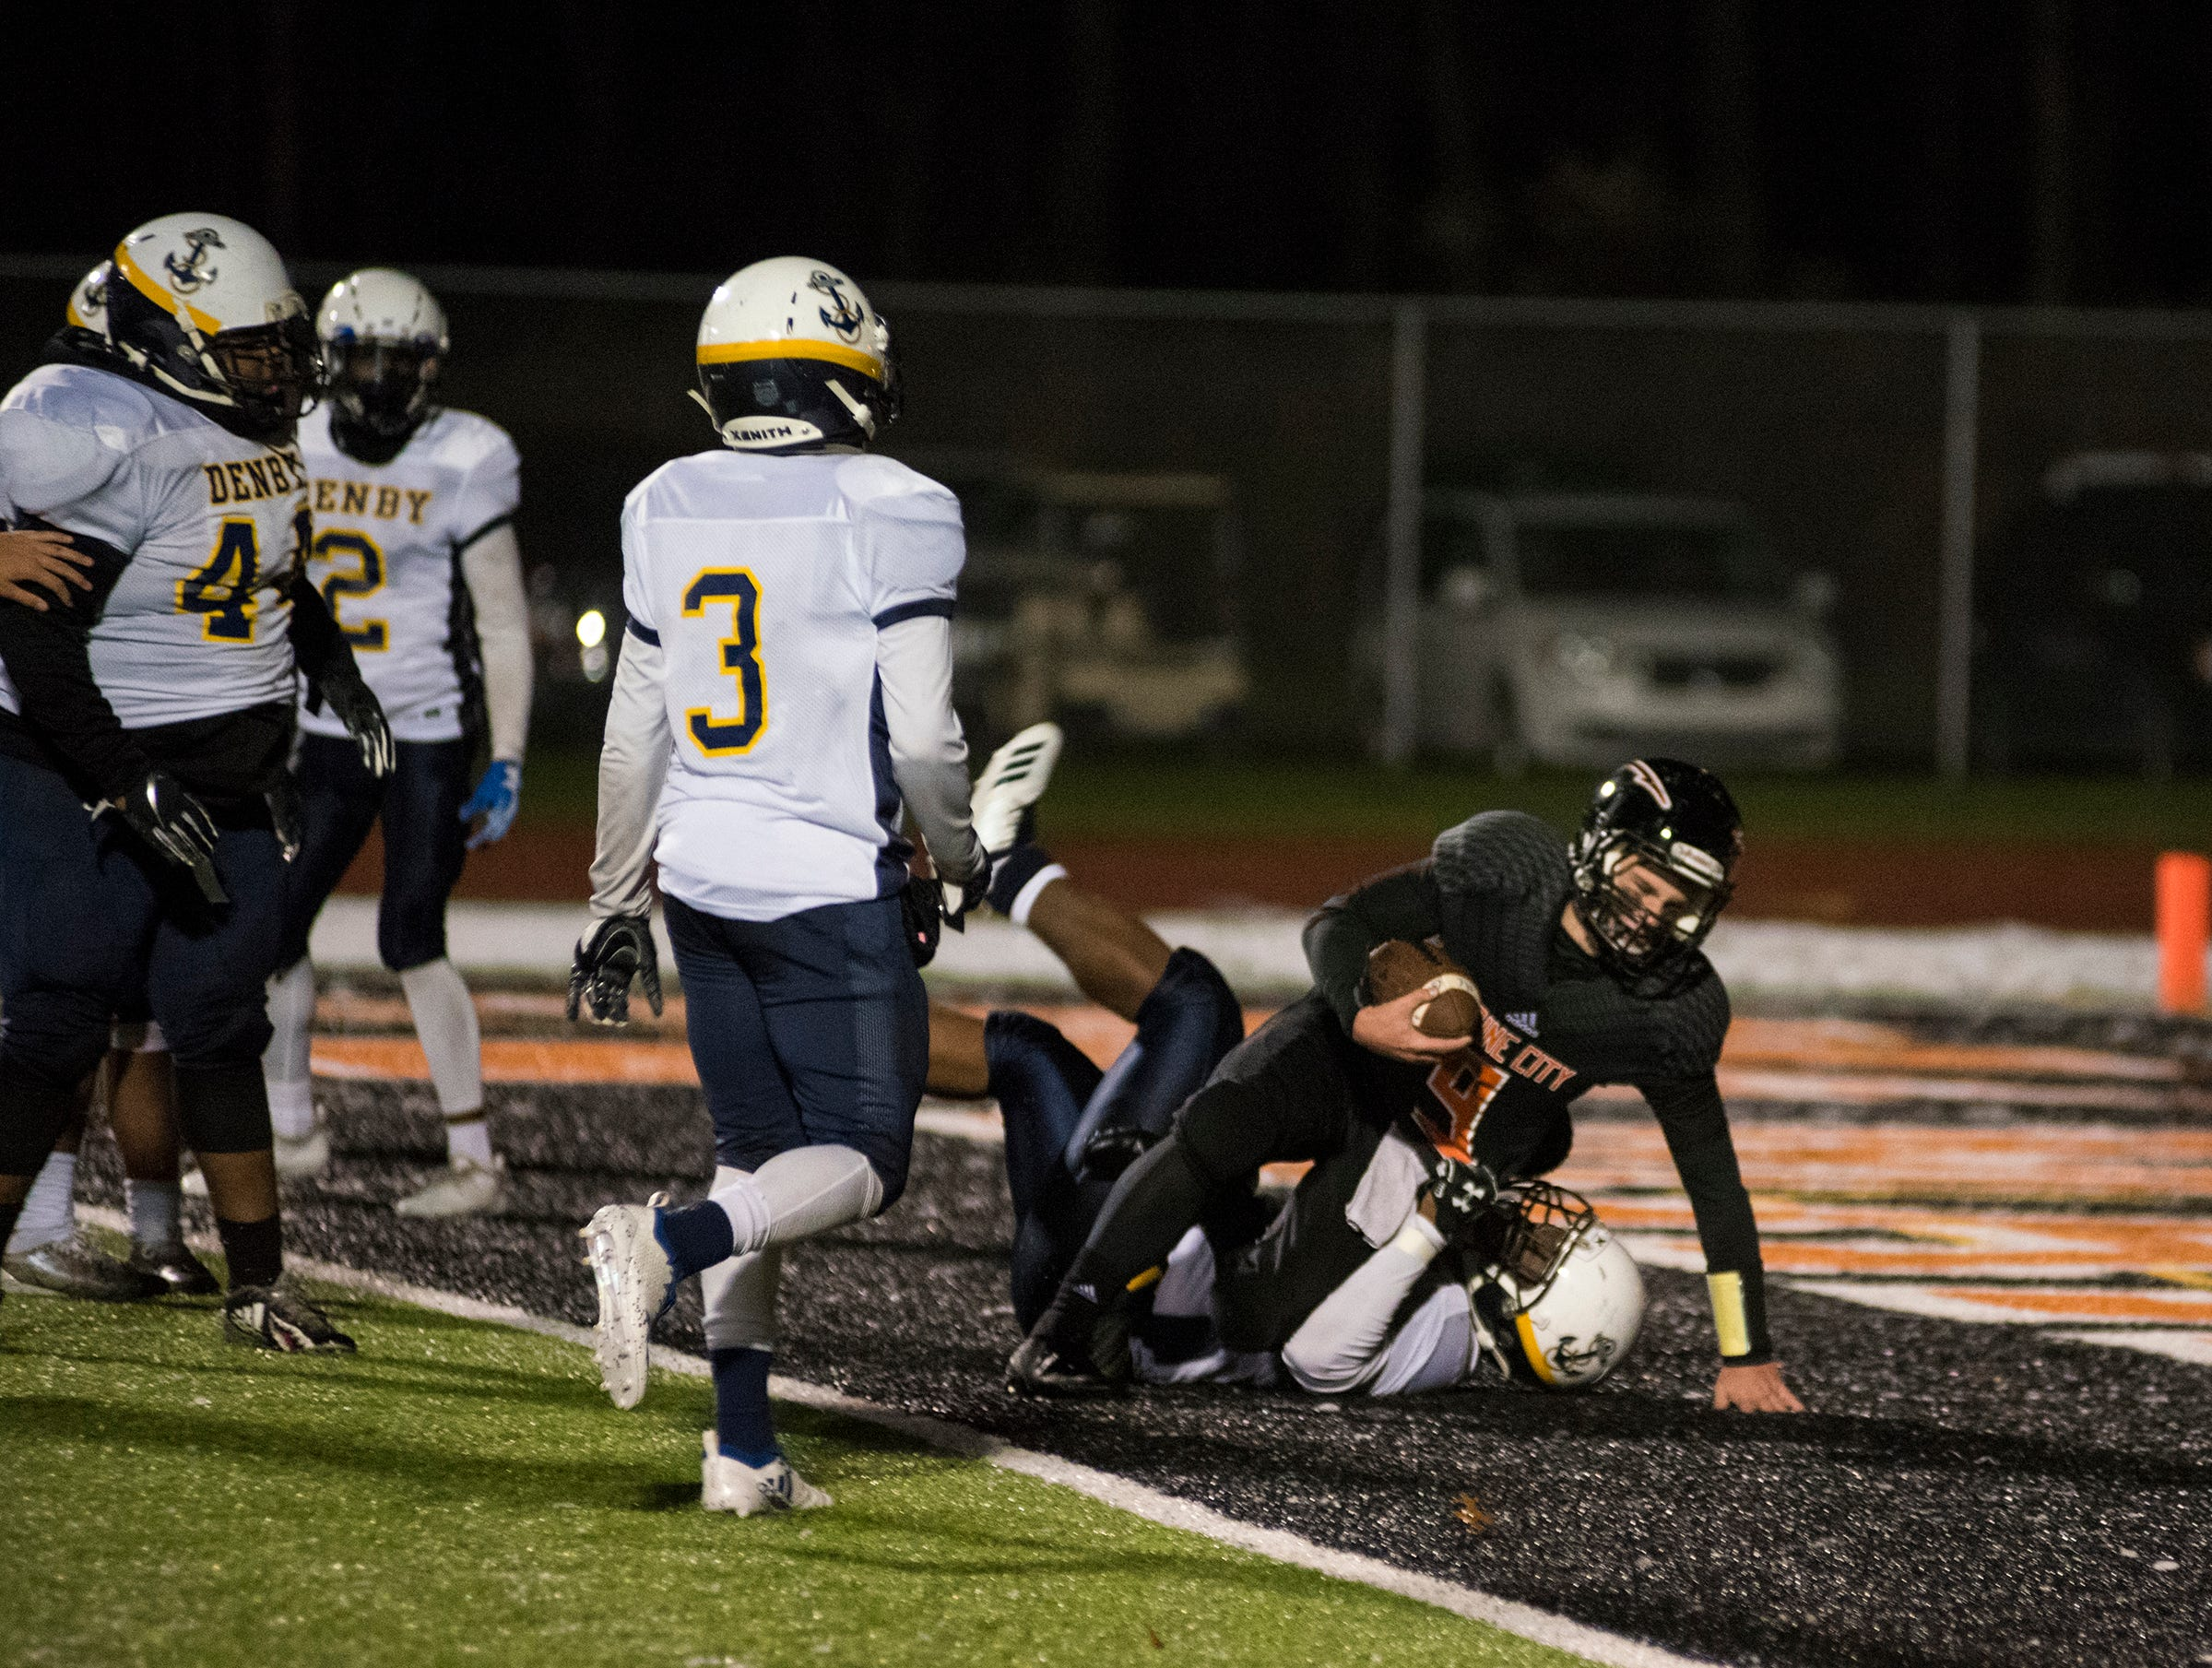 Marine City High School quarterback Colby Walker (9) is brought down inside the end zone in overtime during the MHSAA Division 5 regional championship game against Detroit Denby Tech Friday, Nov. 9, 2018 at East China Stadium.